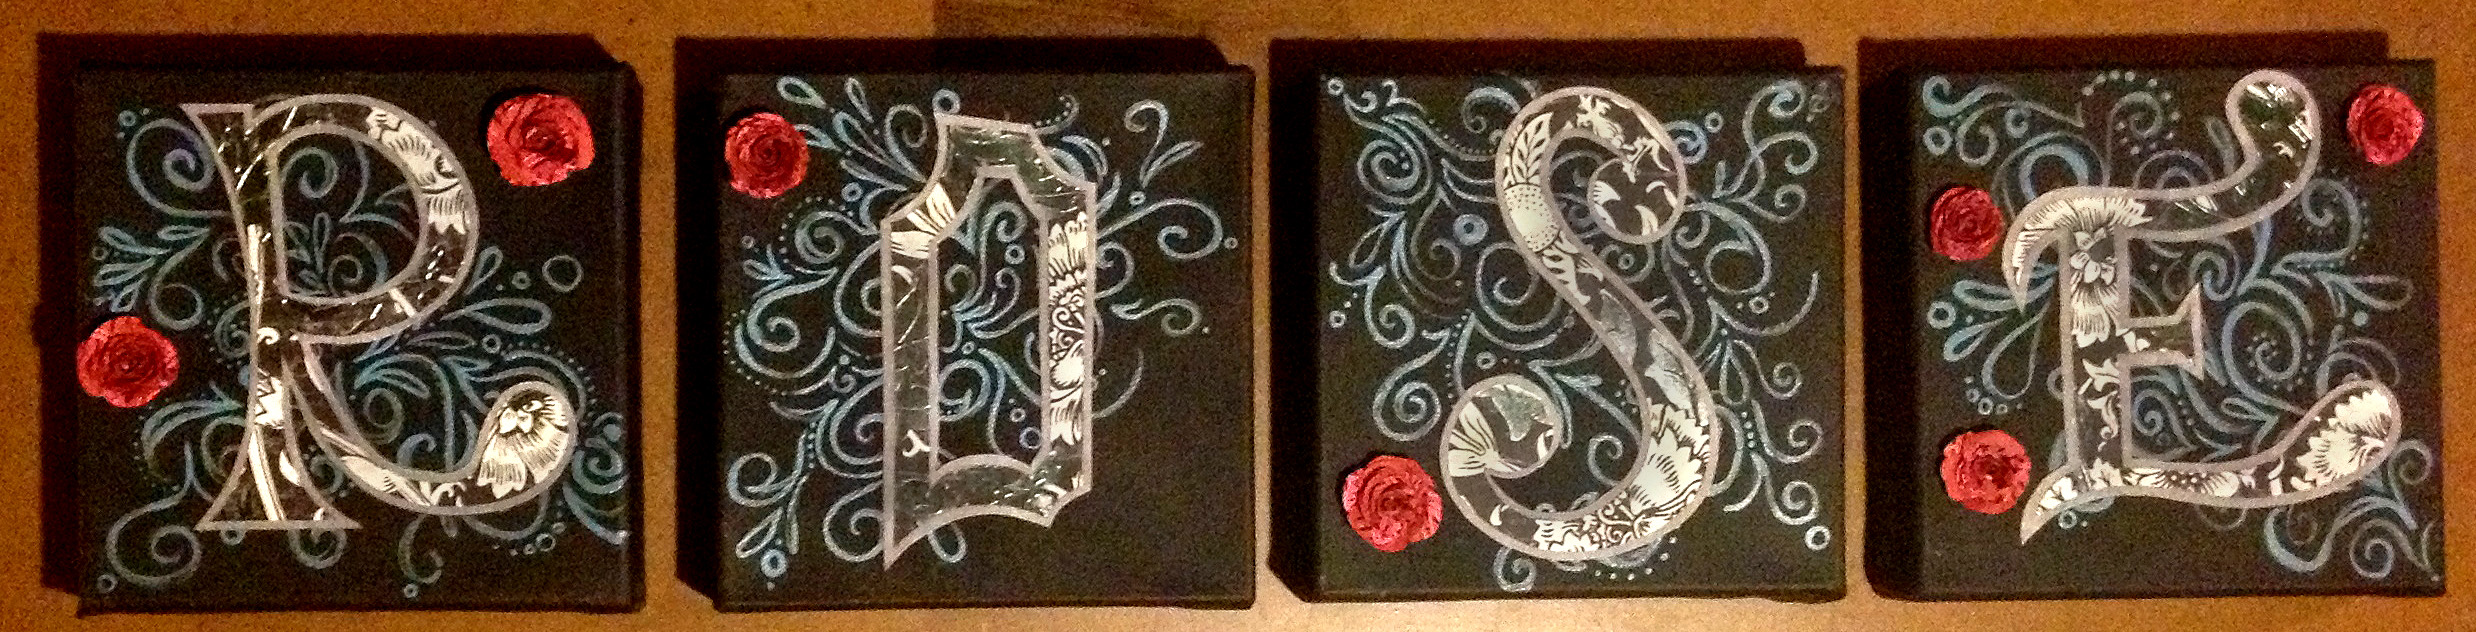 Rose Wall Canvases 2